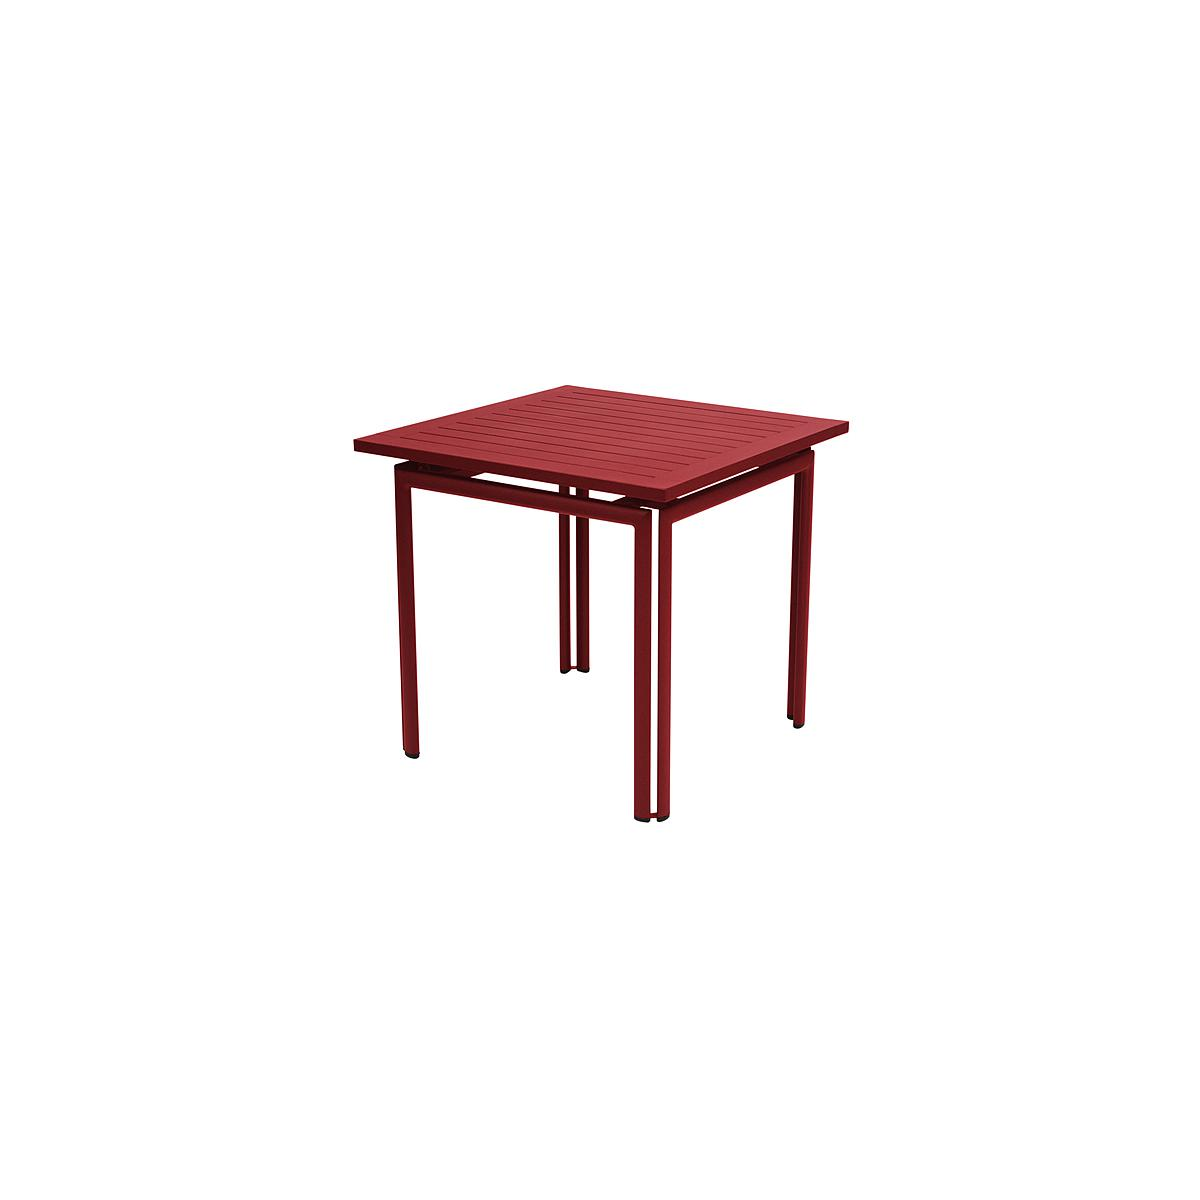 COSTA by Fermob Table 80x80 cm piment